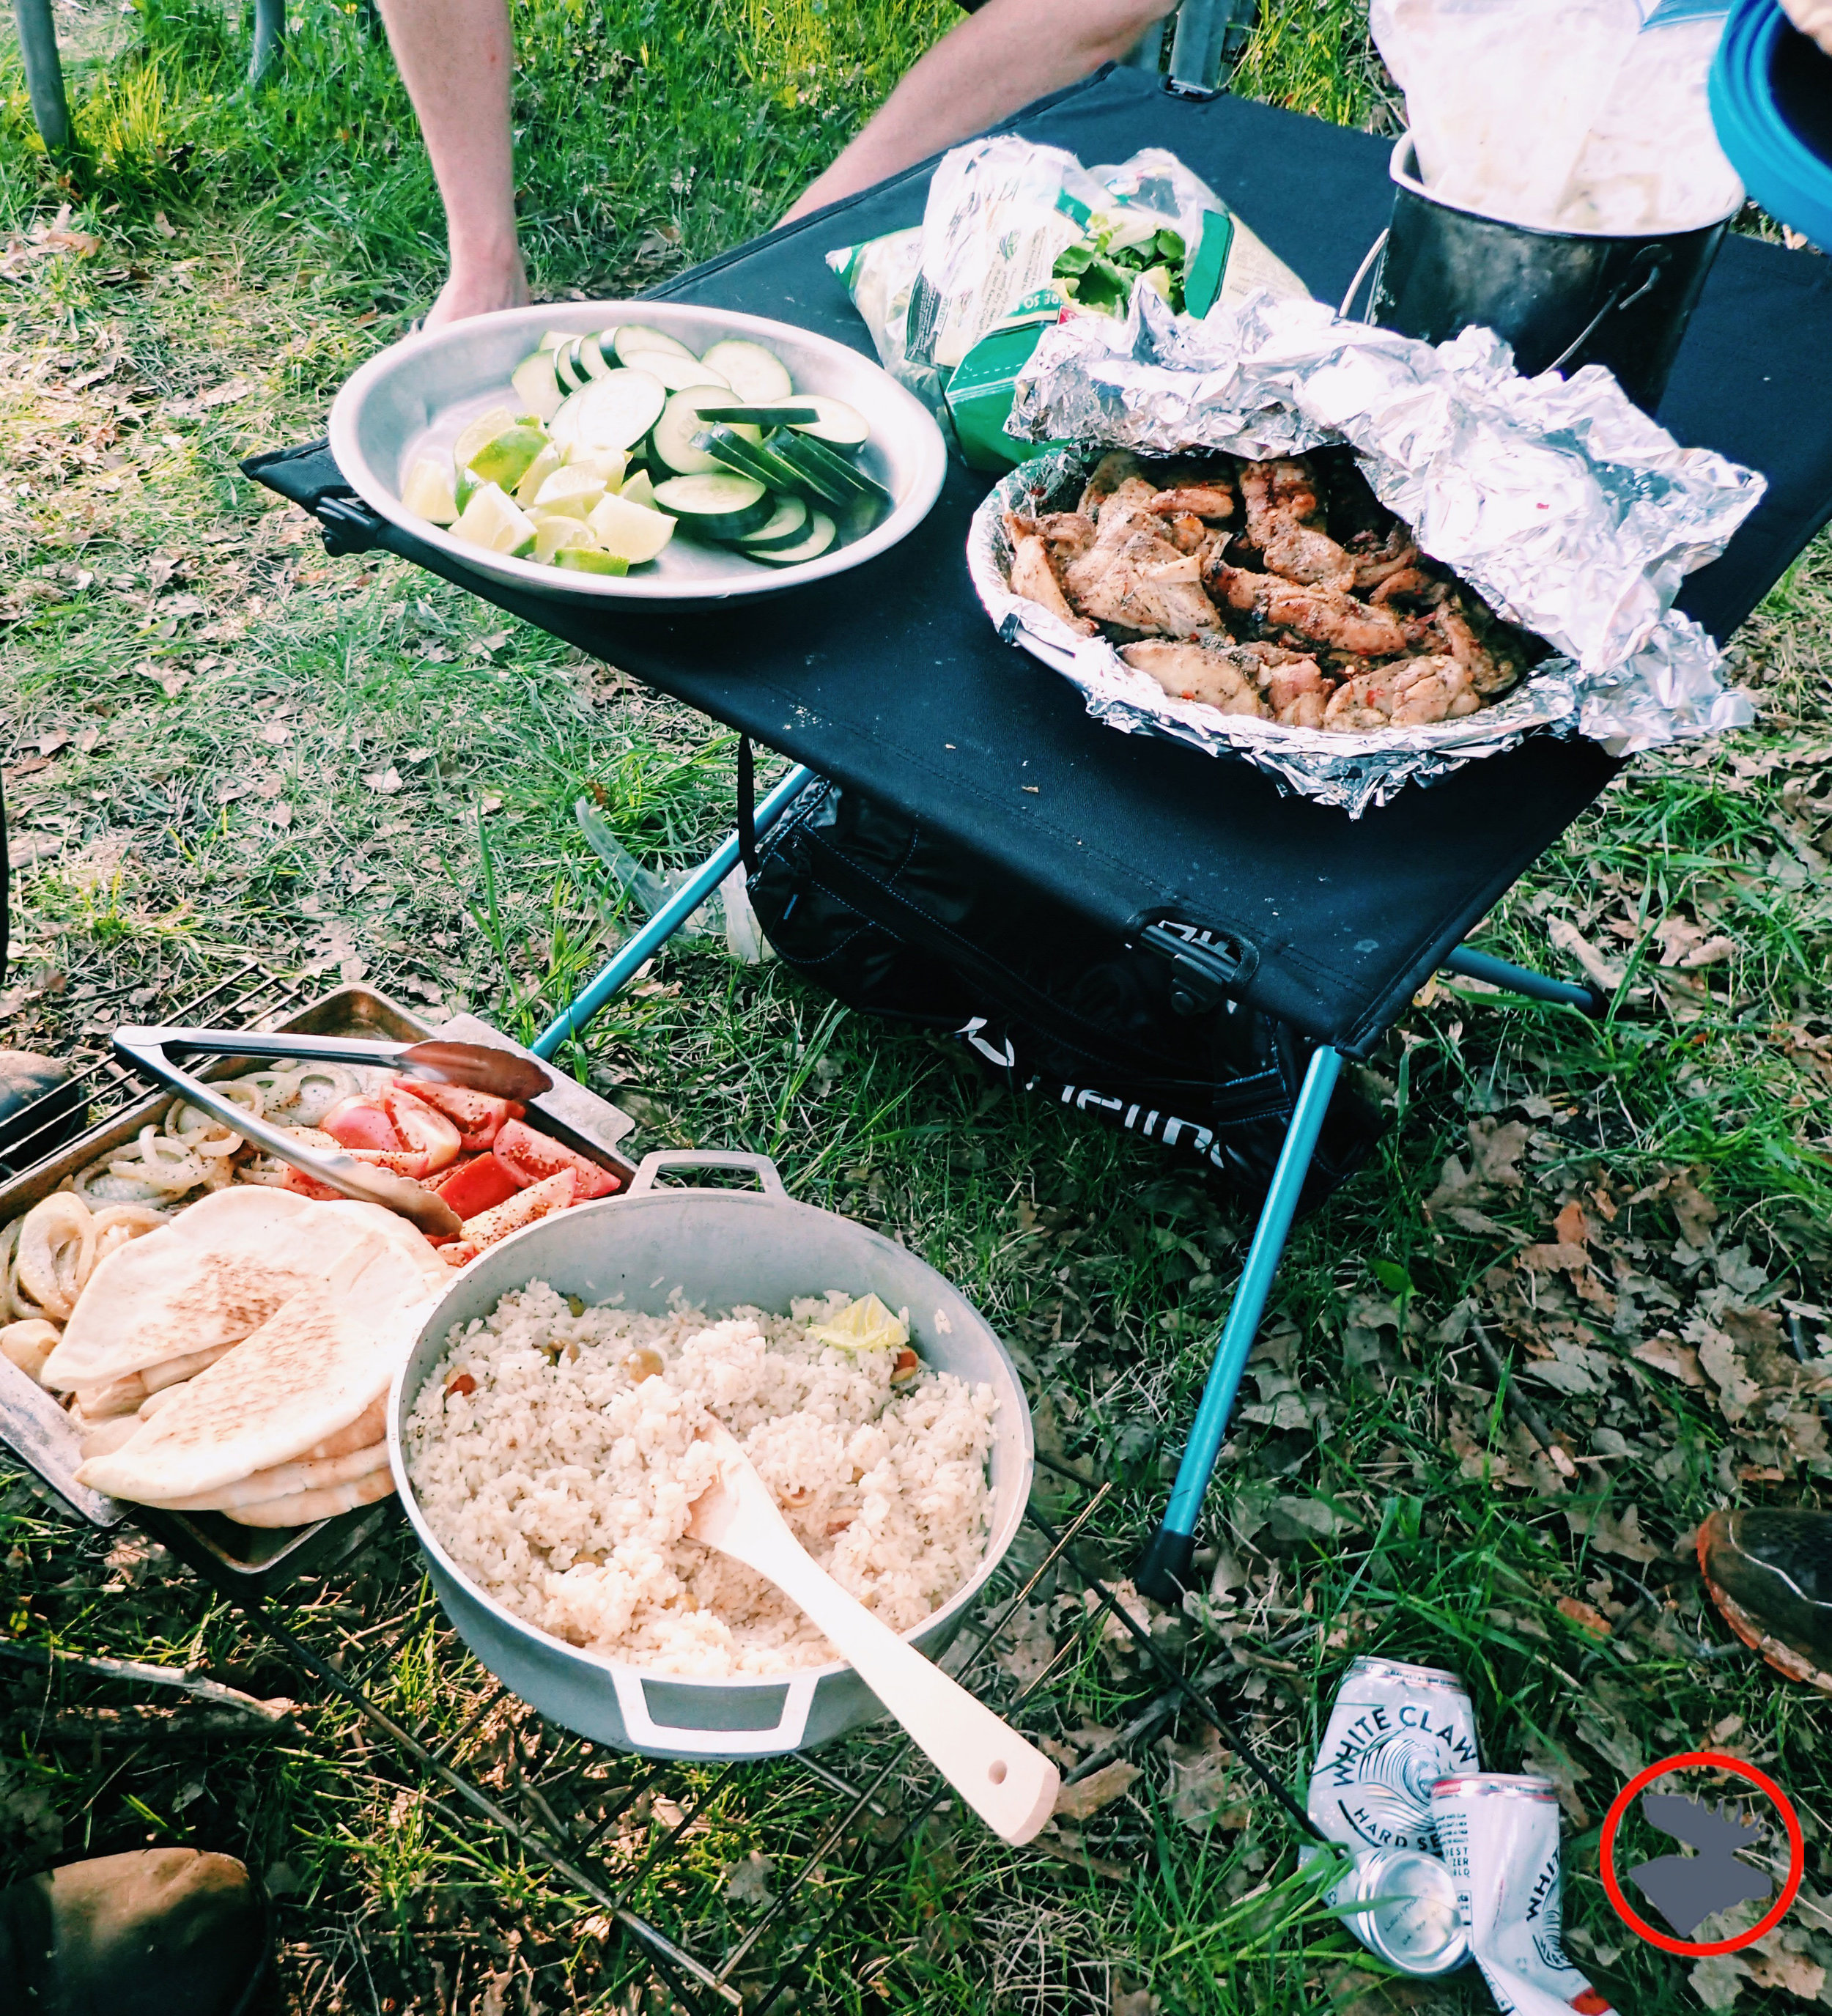 Big-Fork-River_Expedition-Log_Camp-Food_July-2019.jpg